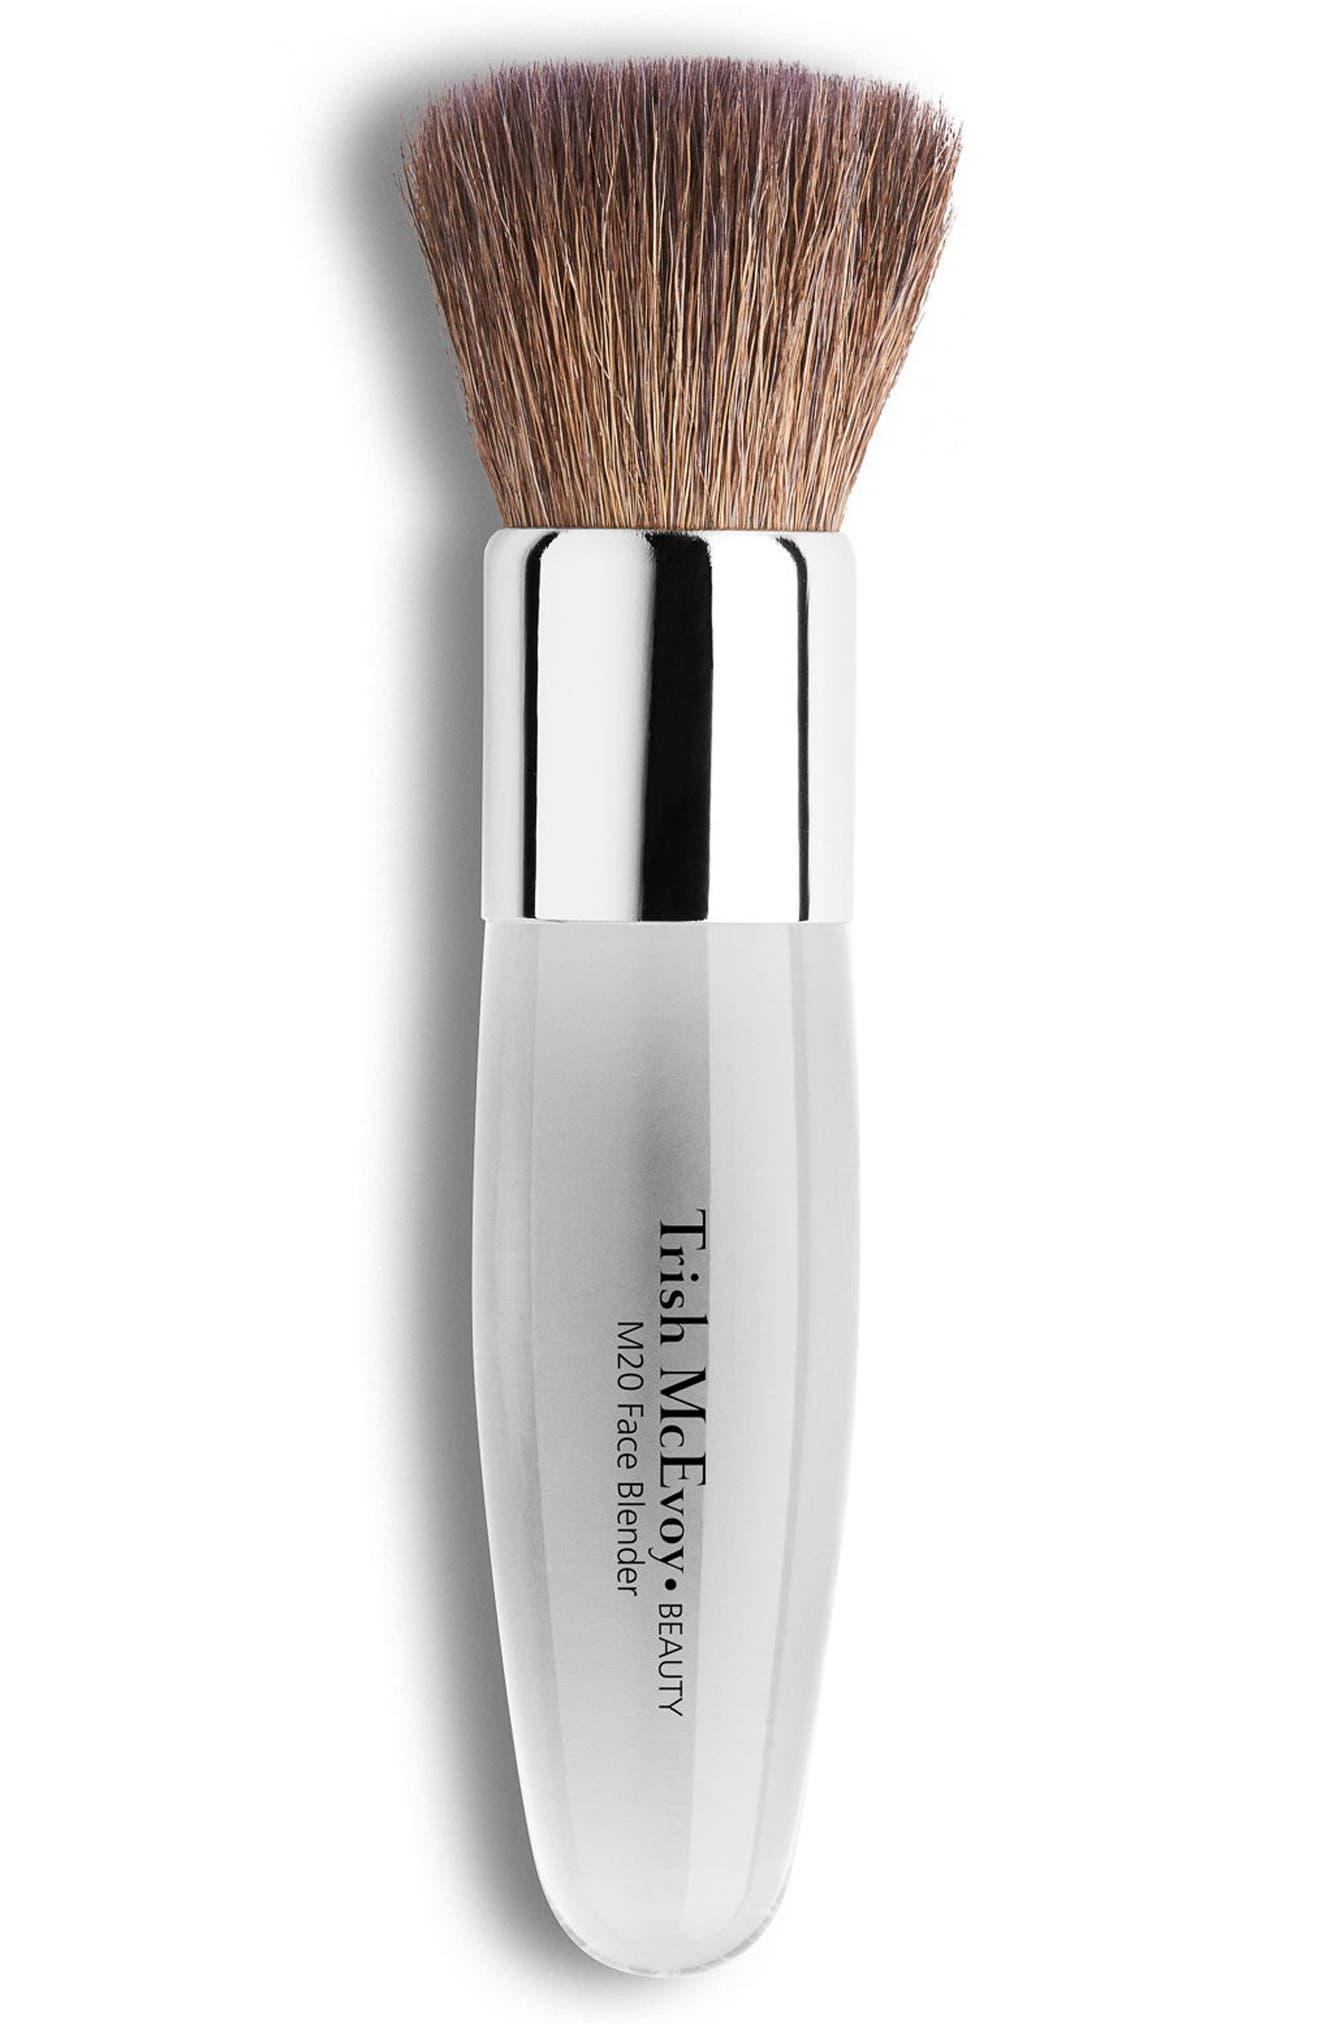 Trish McEvoy #M20 Face Blender Brush